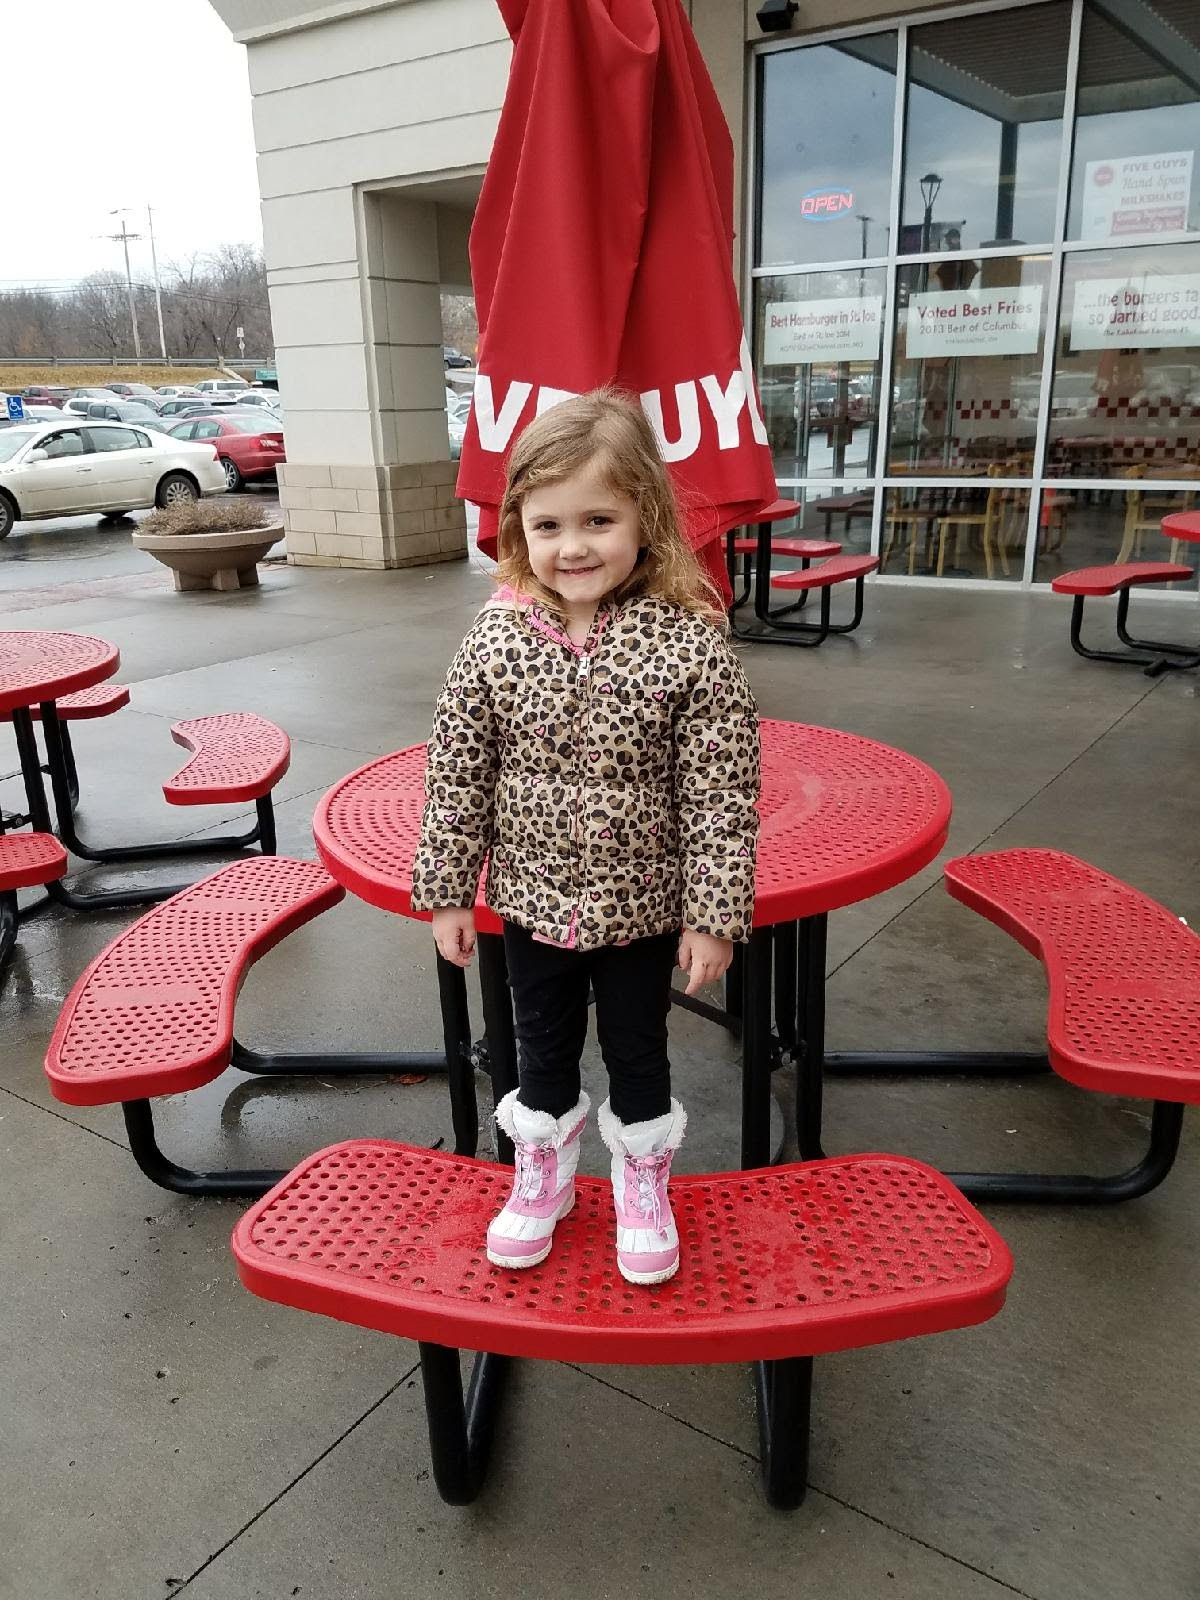 Jaelyn at 5 guys wardparkway aubrey owen